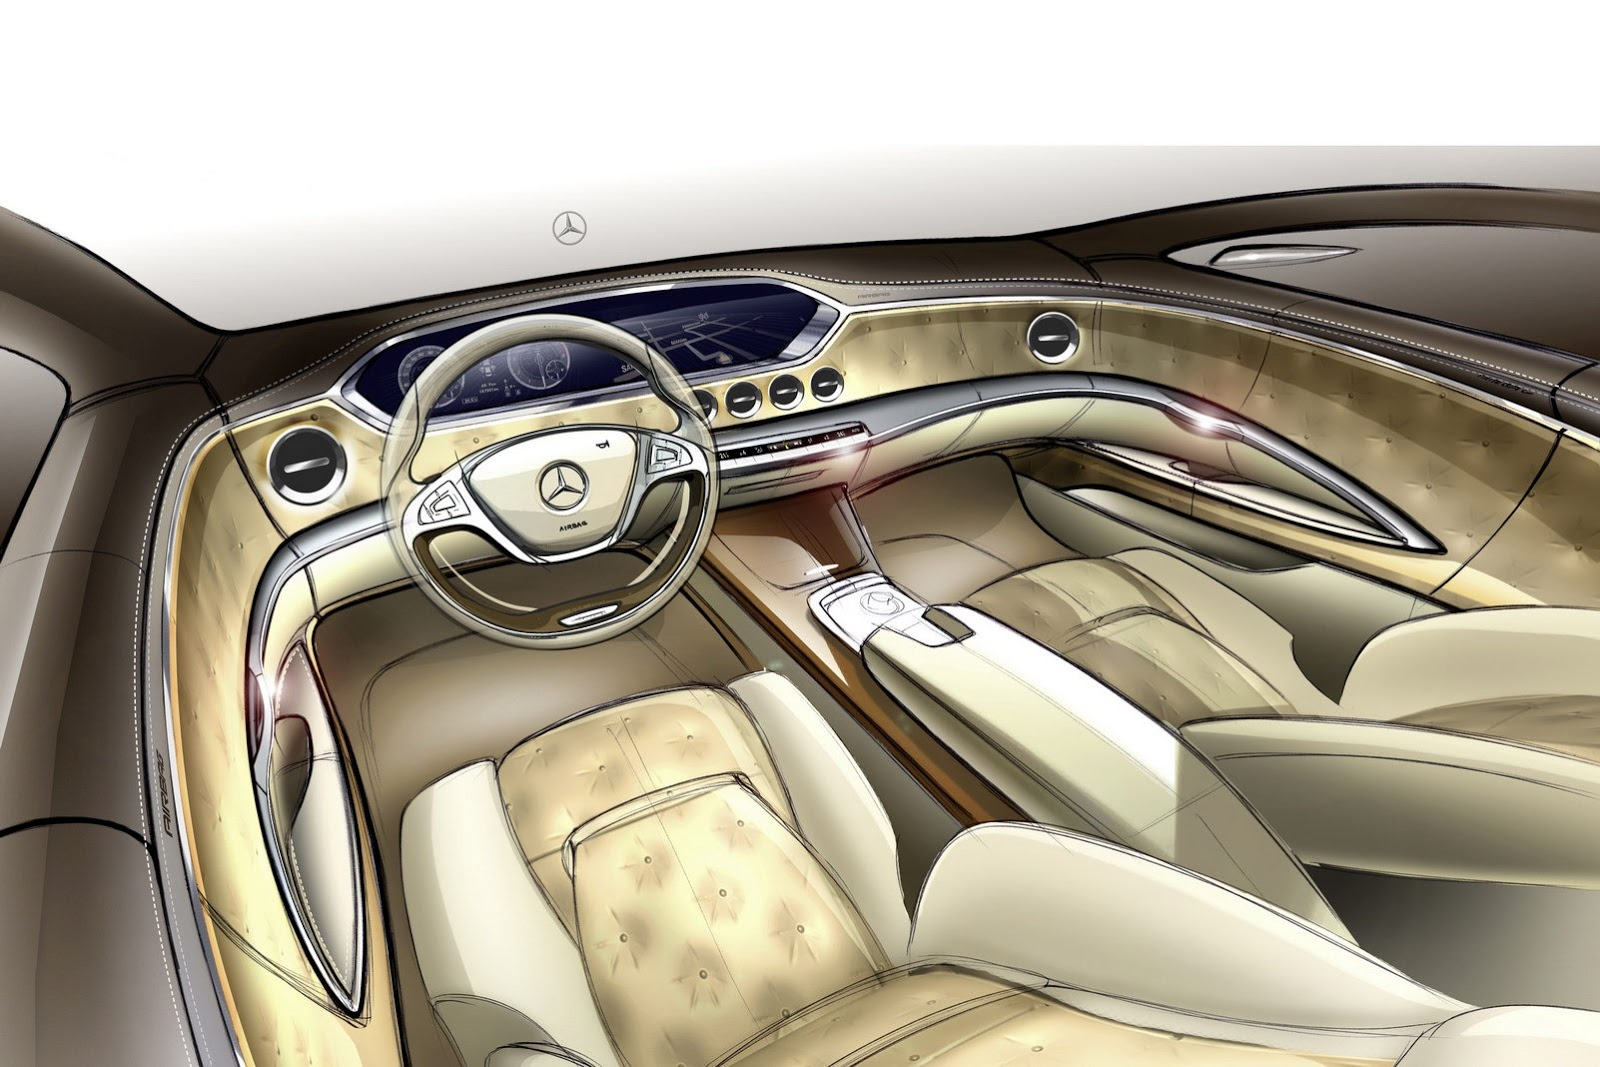 2014 Mercedes Benz S-Class Sketch - SMADE MEDIA (7)